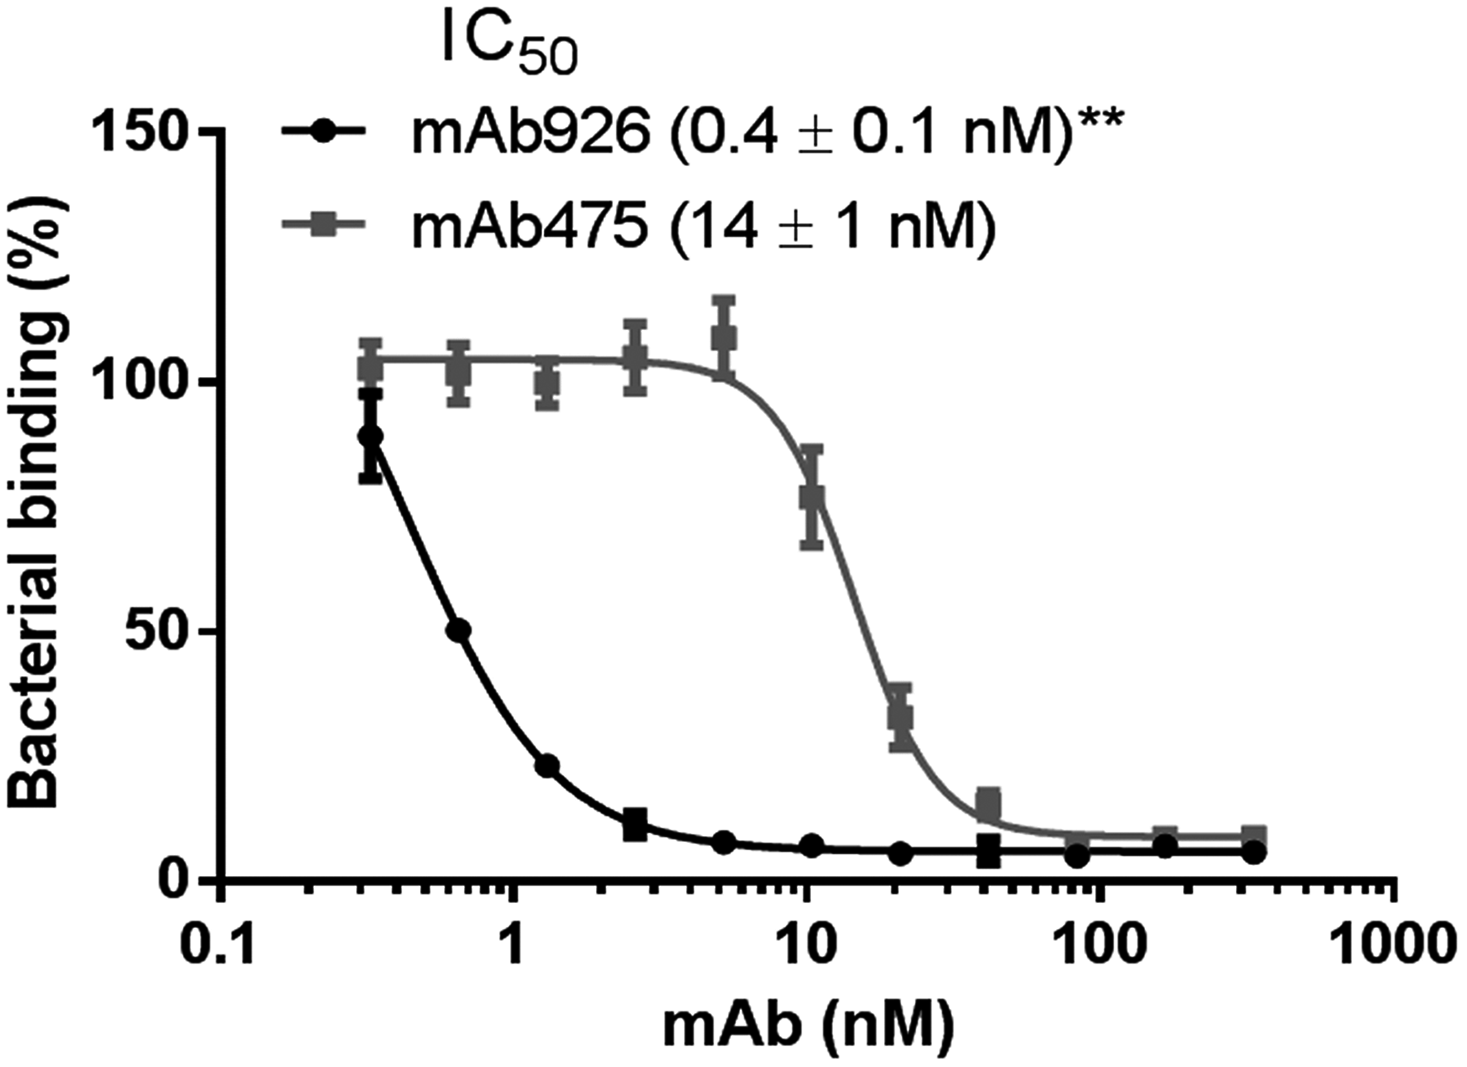 Inhibitory potency of mAb926 and mAb475.